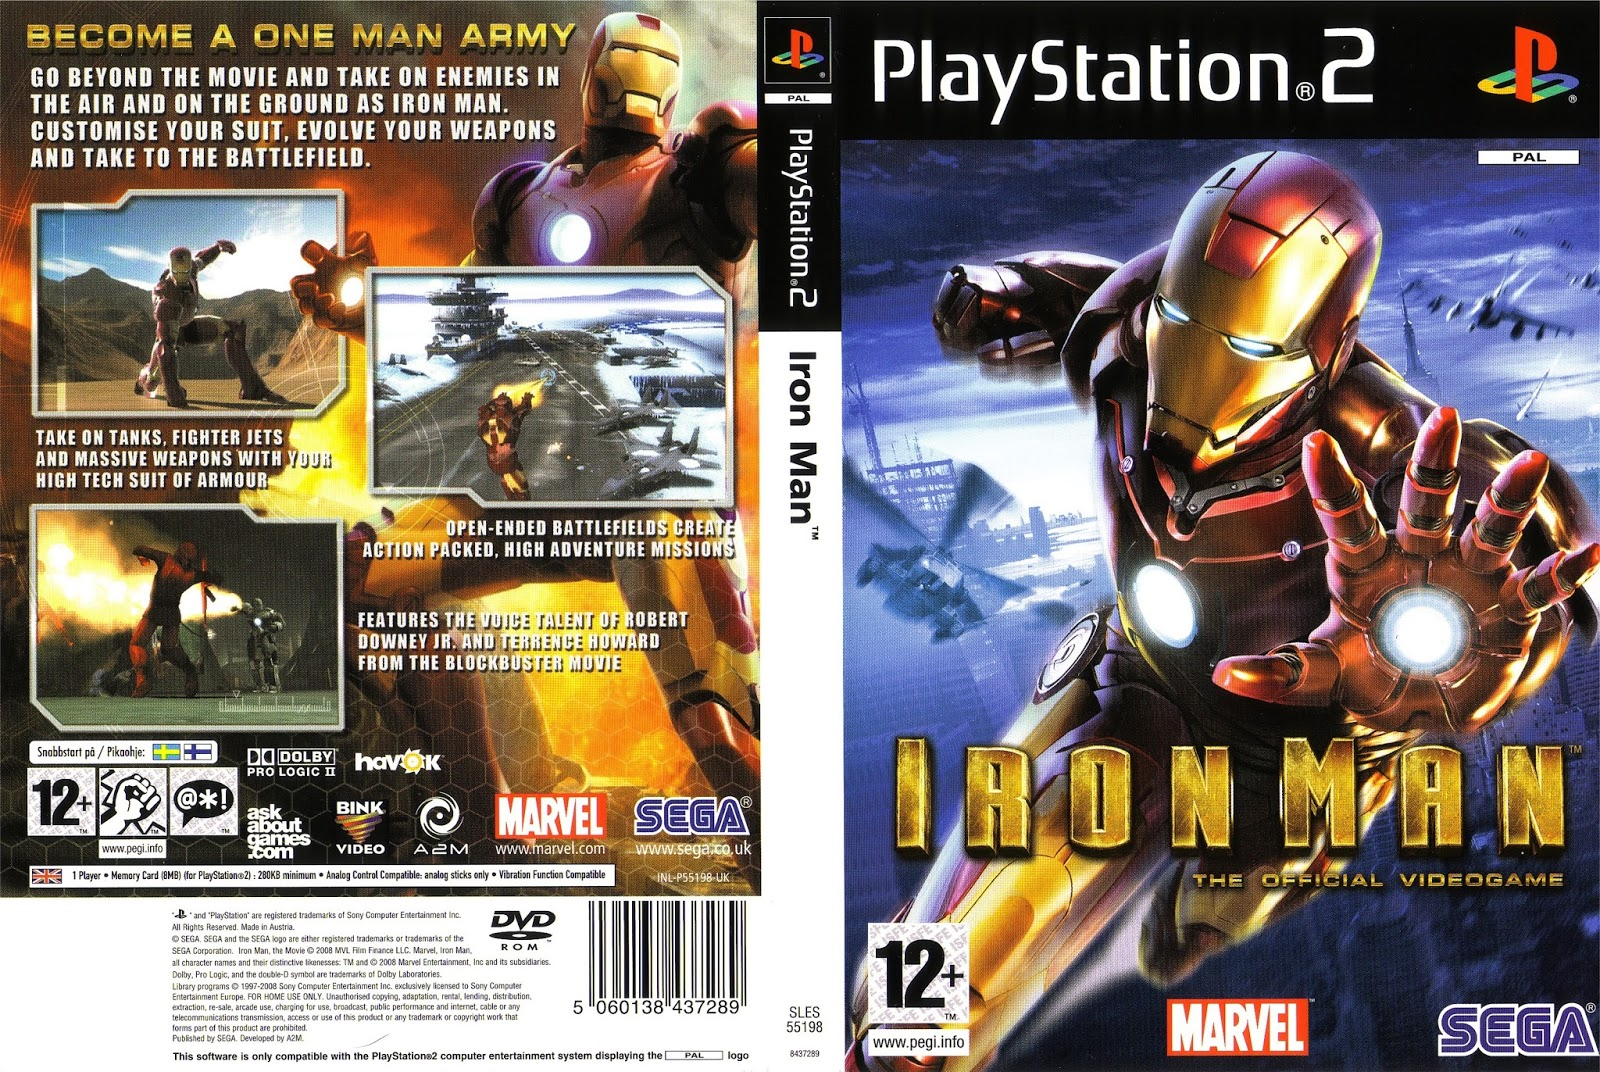 Download Game PS2 ISO dan PS1 Terbaik